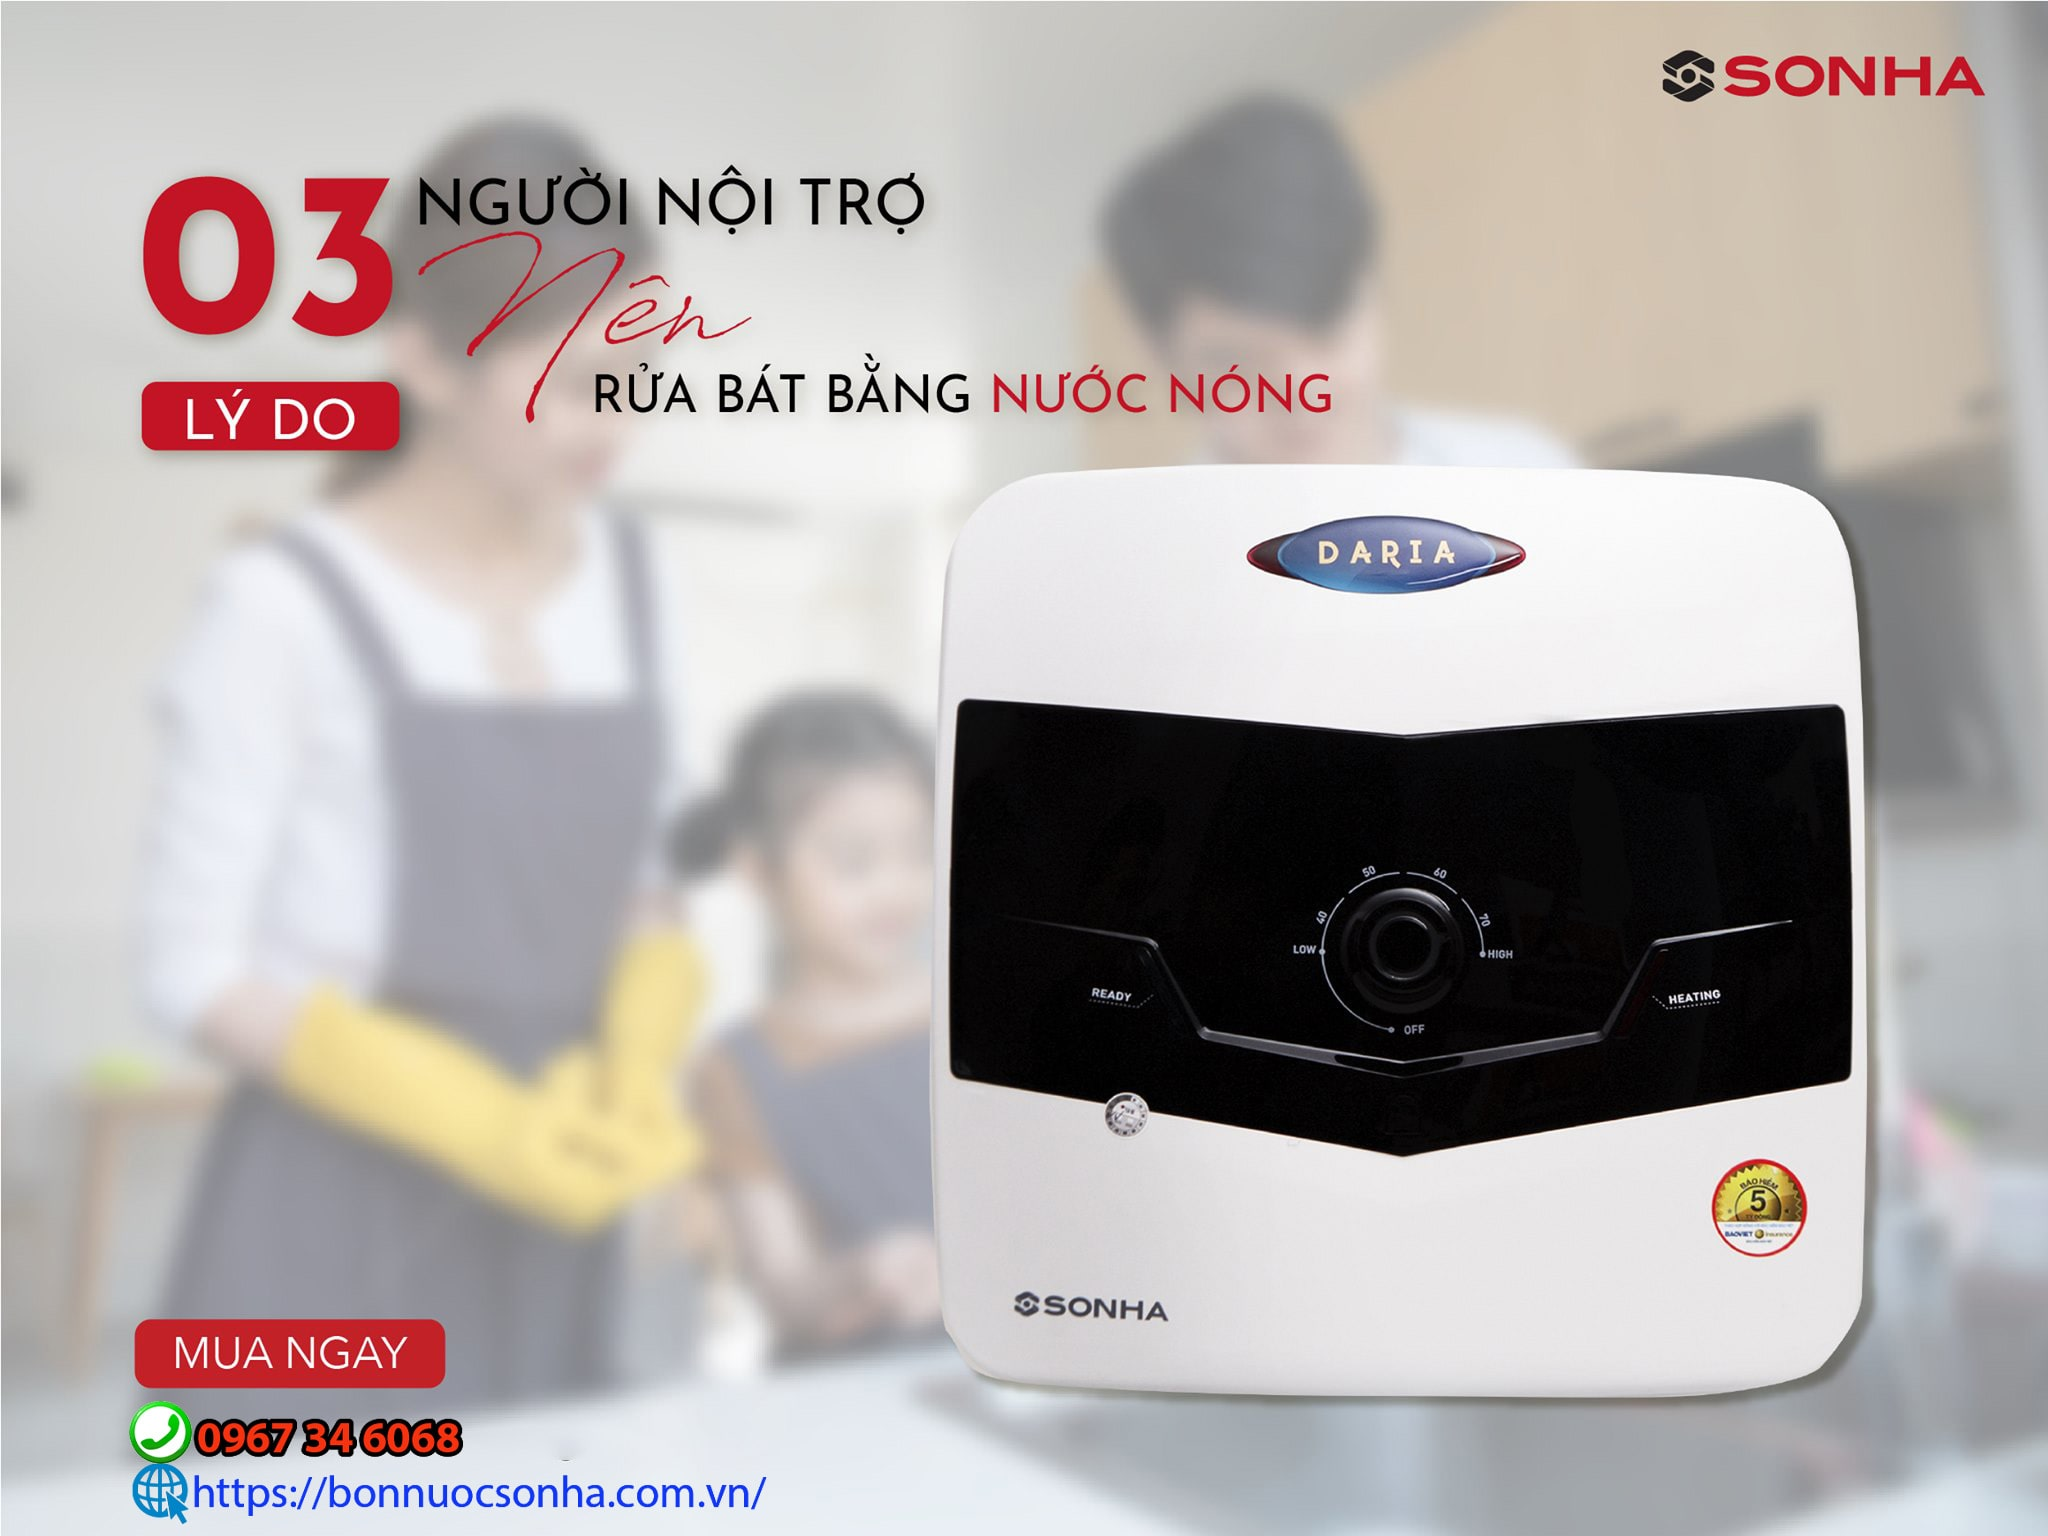 3 Ly Do Nguoi Noi Tro Nen Rua Bat Bang Nuoc Nong Min